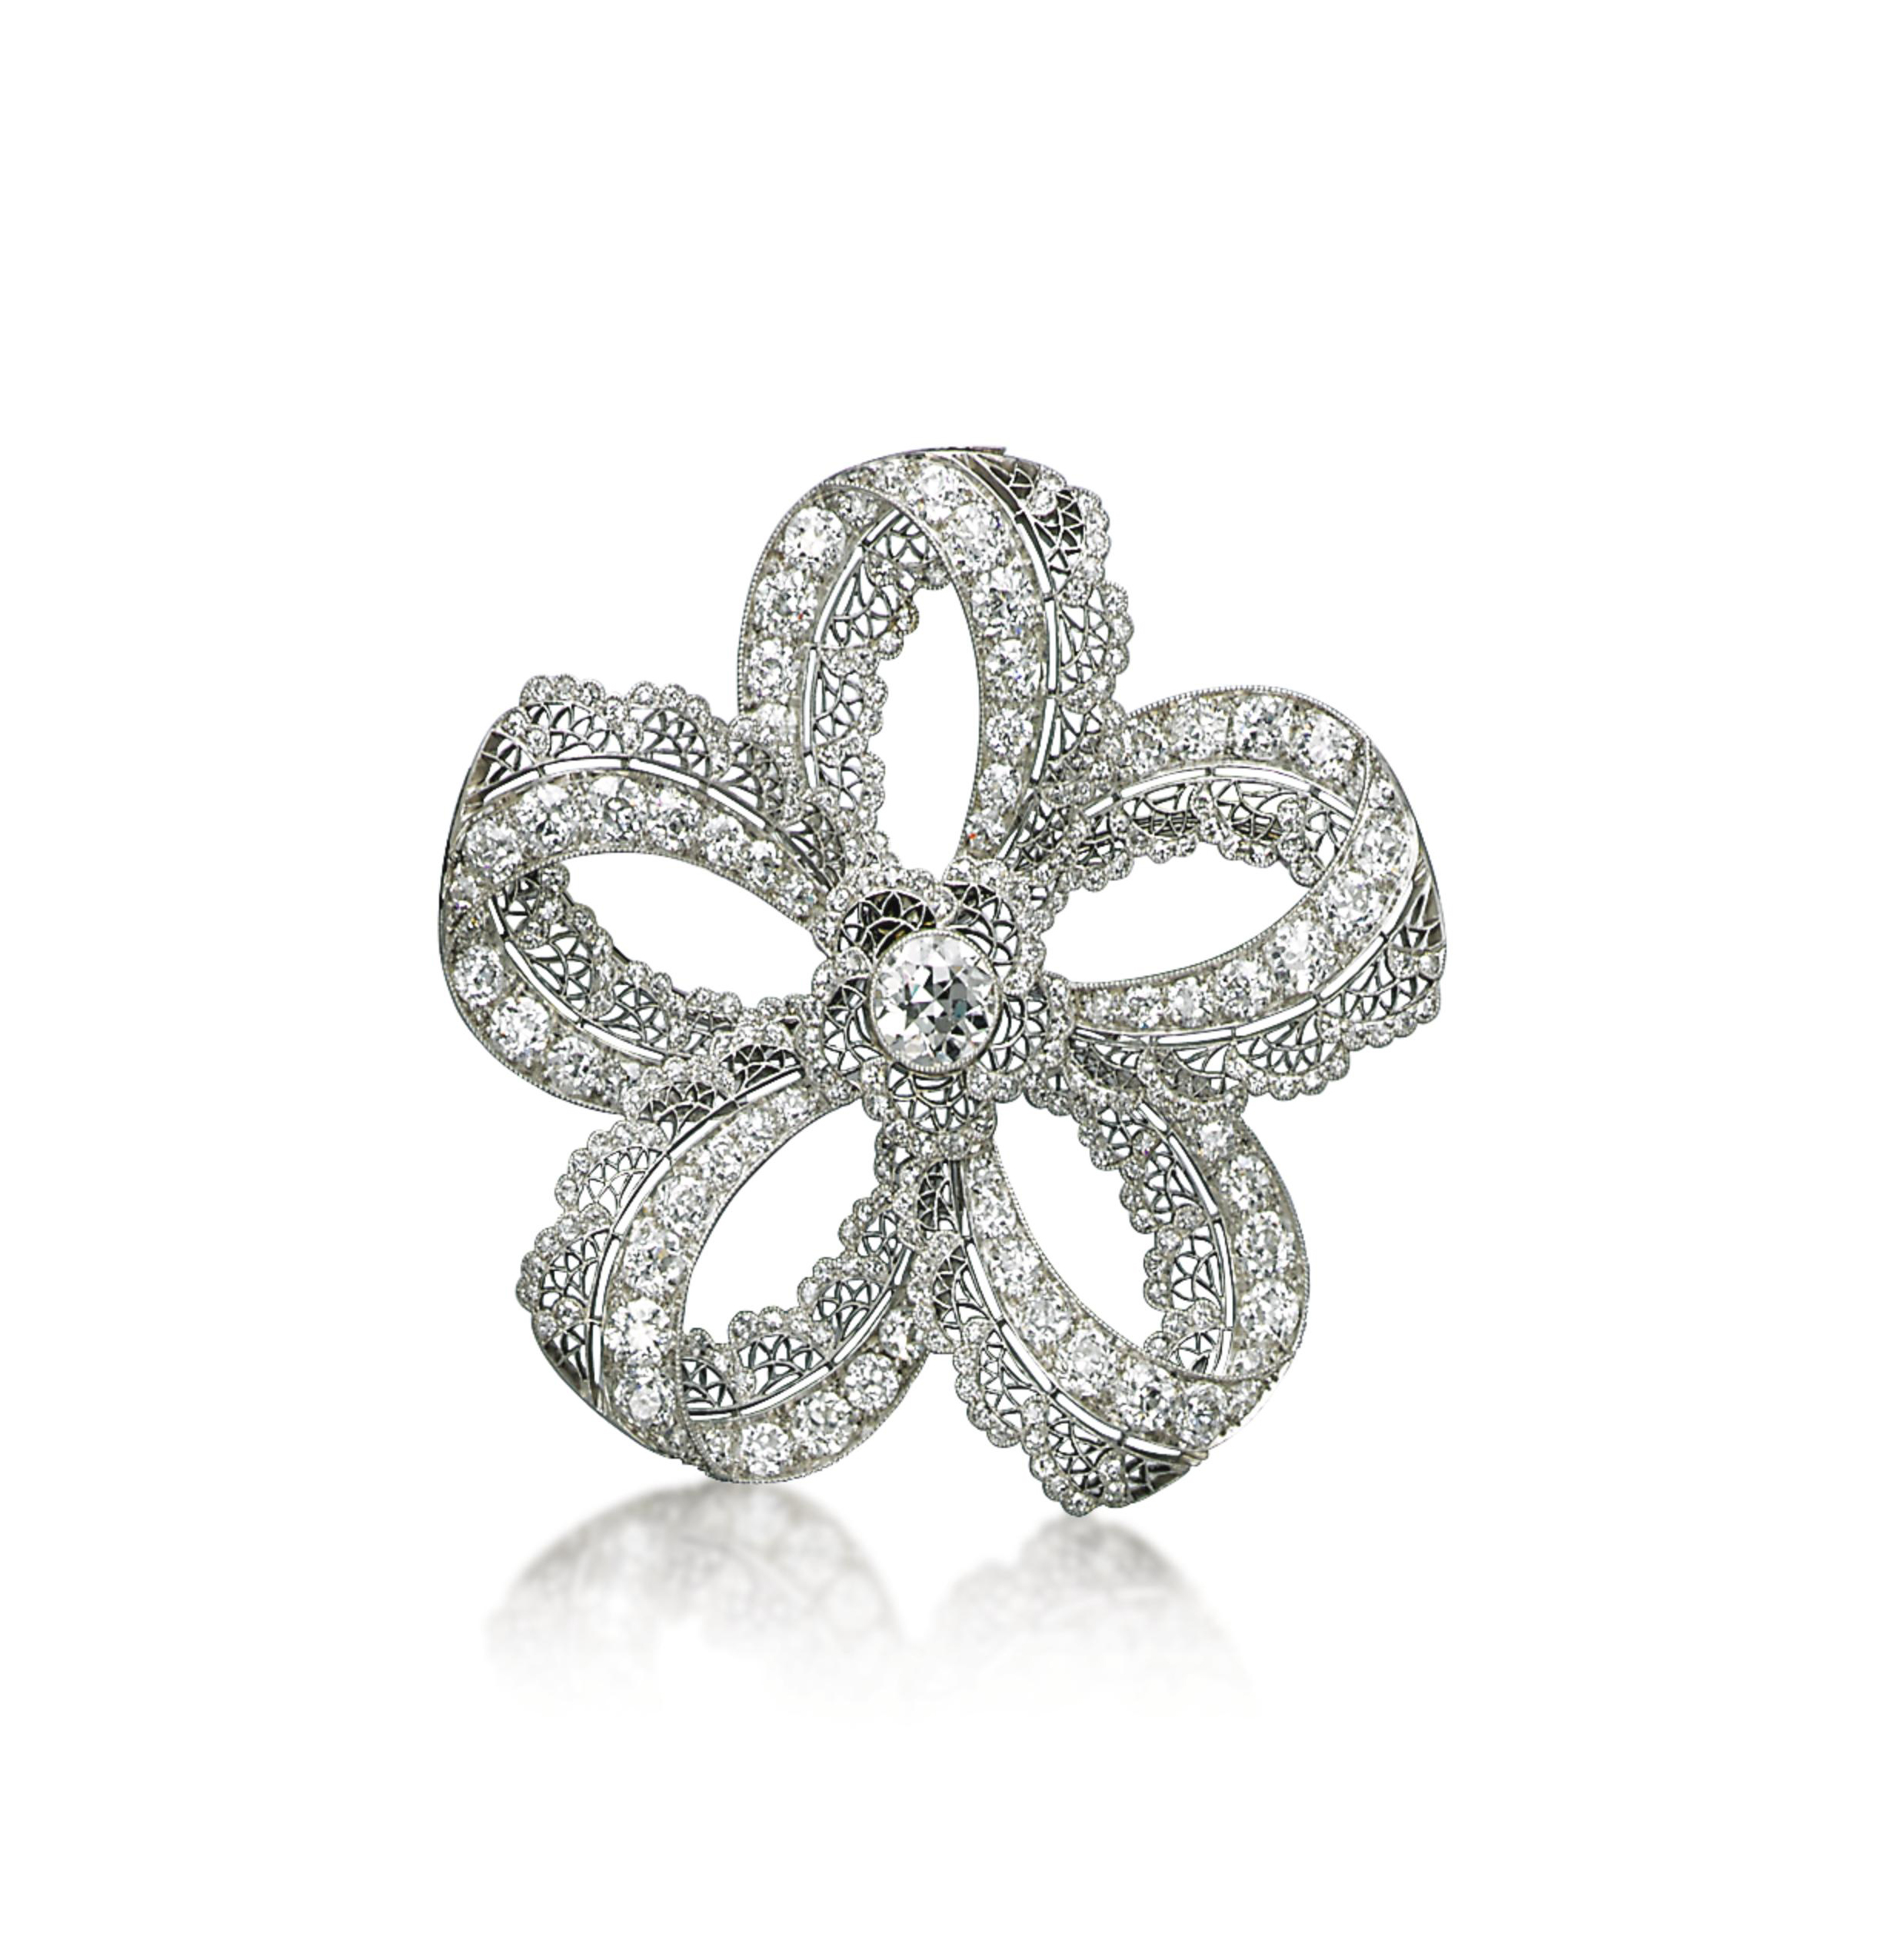 A BELLE EPOQUE DIAMOND BROOCH, BY HENNELL